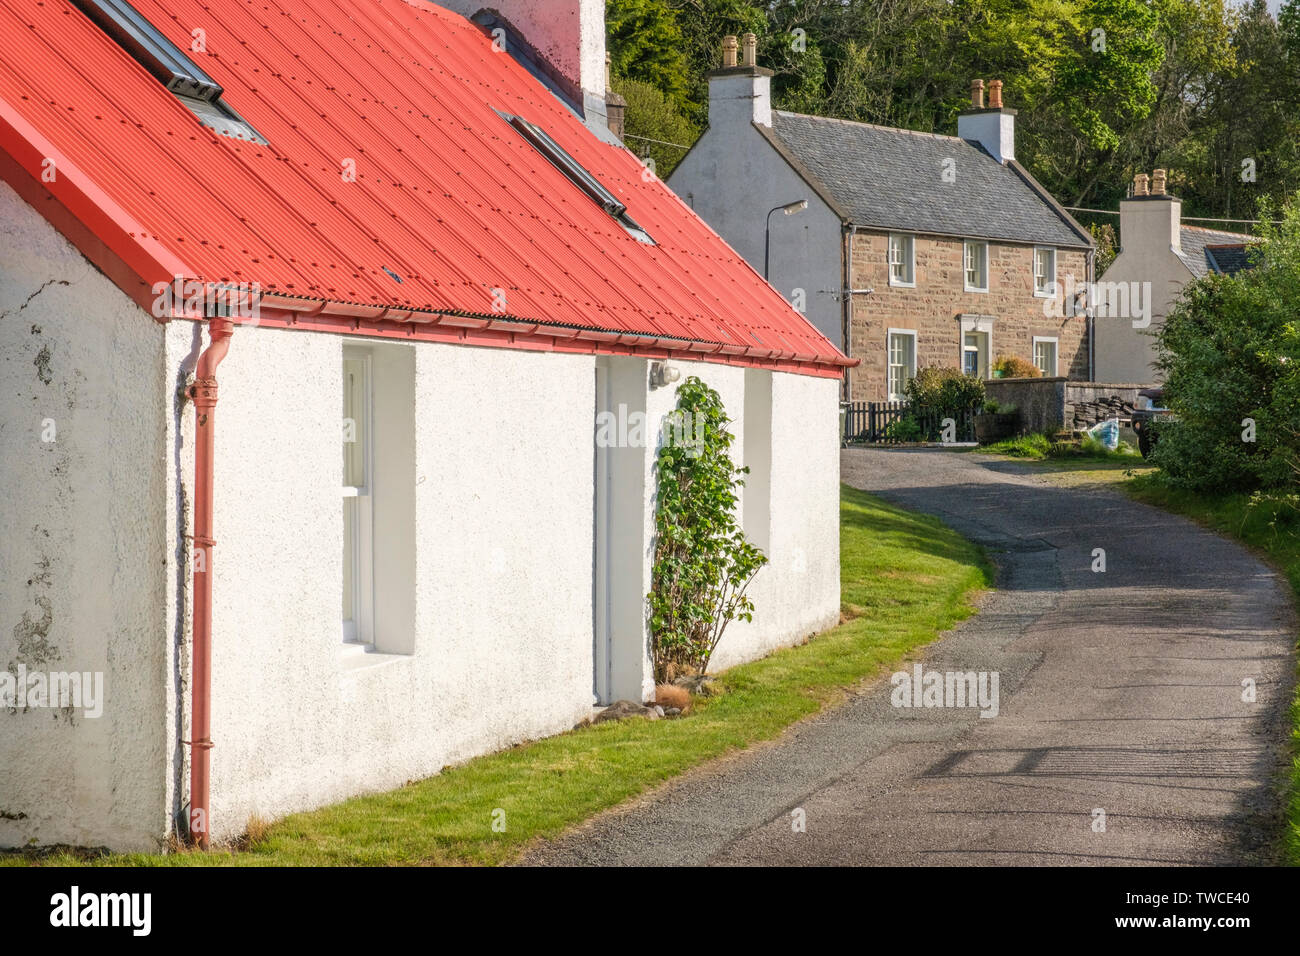 Former Poor House in foreground with former police station beyond in Lochcarron village, Wester Ross, Highlands of Scotland - Stock Image